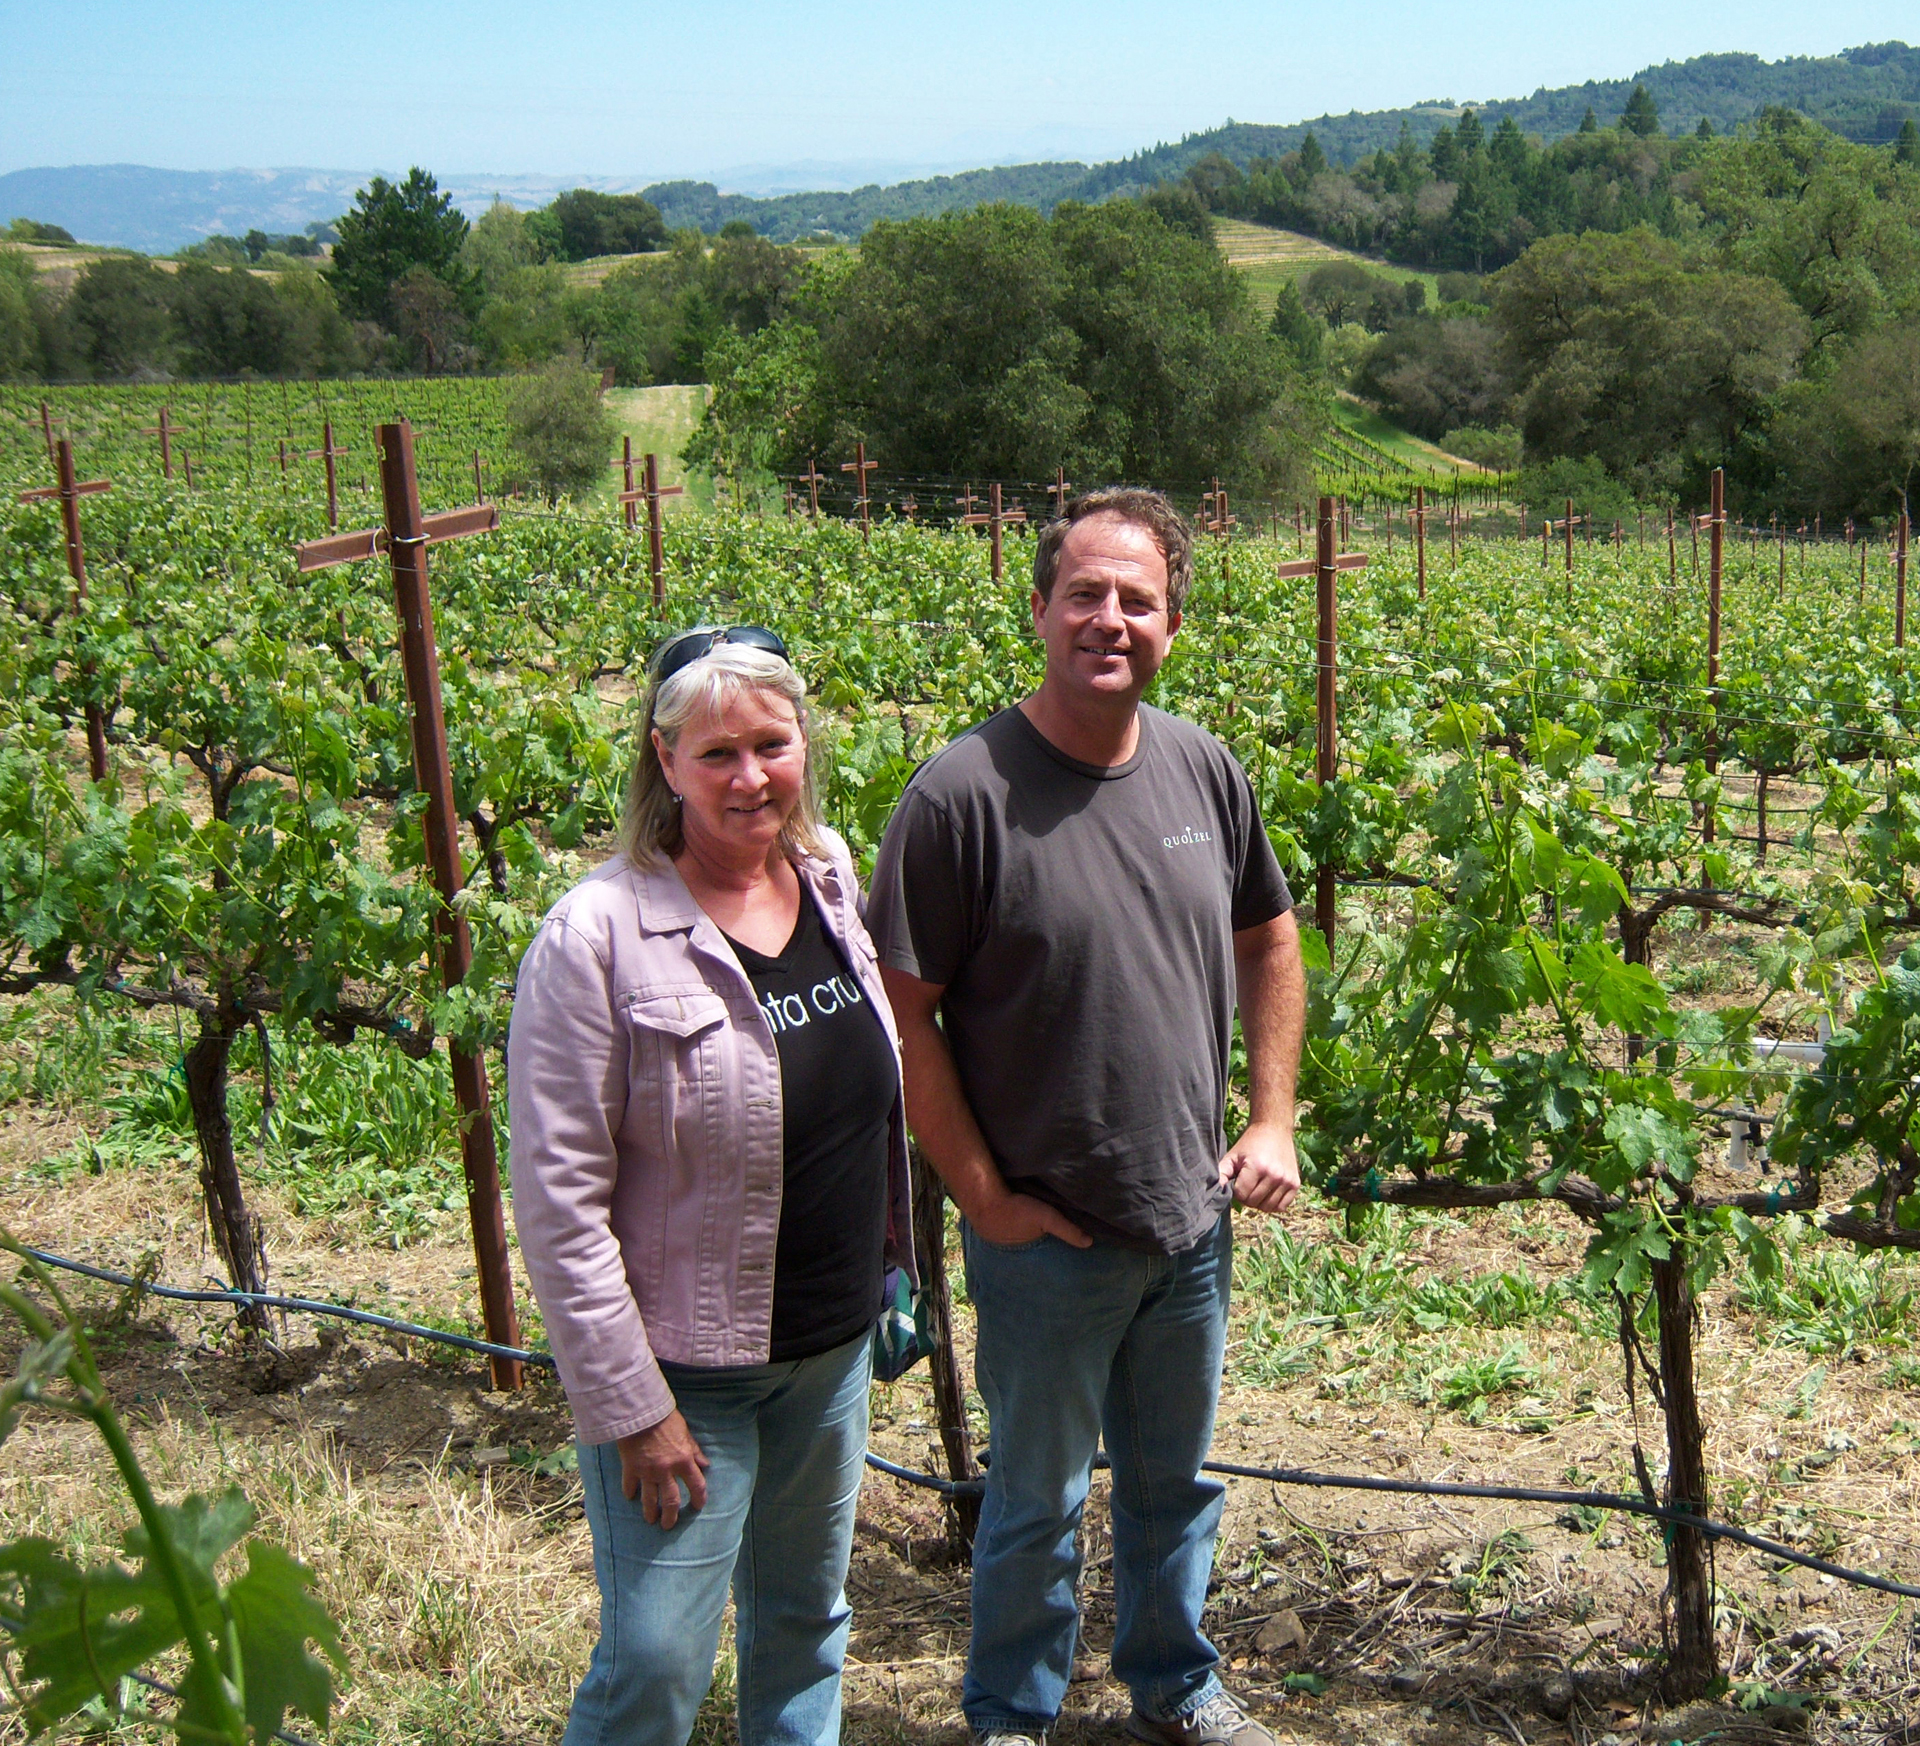 Winemaker Katie Fox and business partner Dan Santa craft wines for home vineyard owners who are often located in wealthy towns in the Santa Cruz Mountains area on each side of the range that faces the coast and the valley.